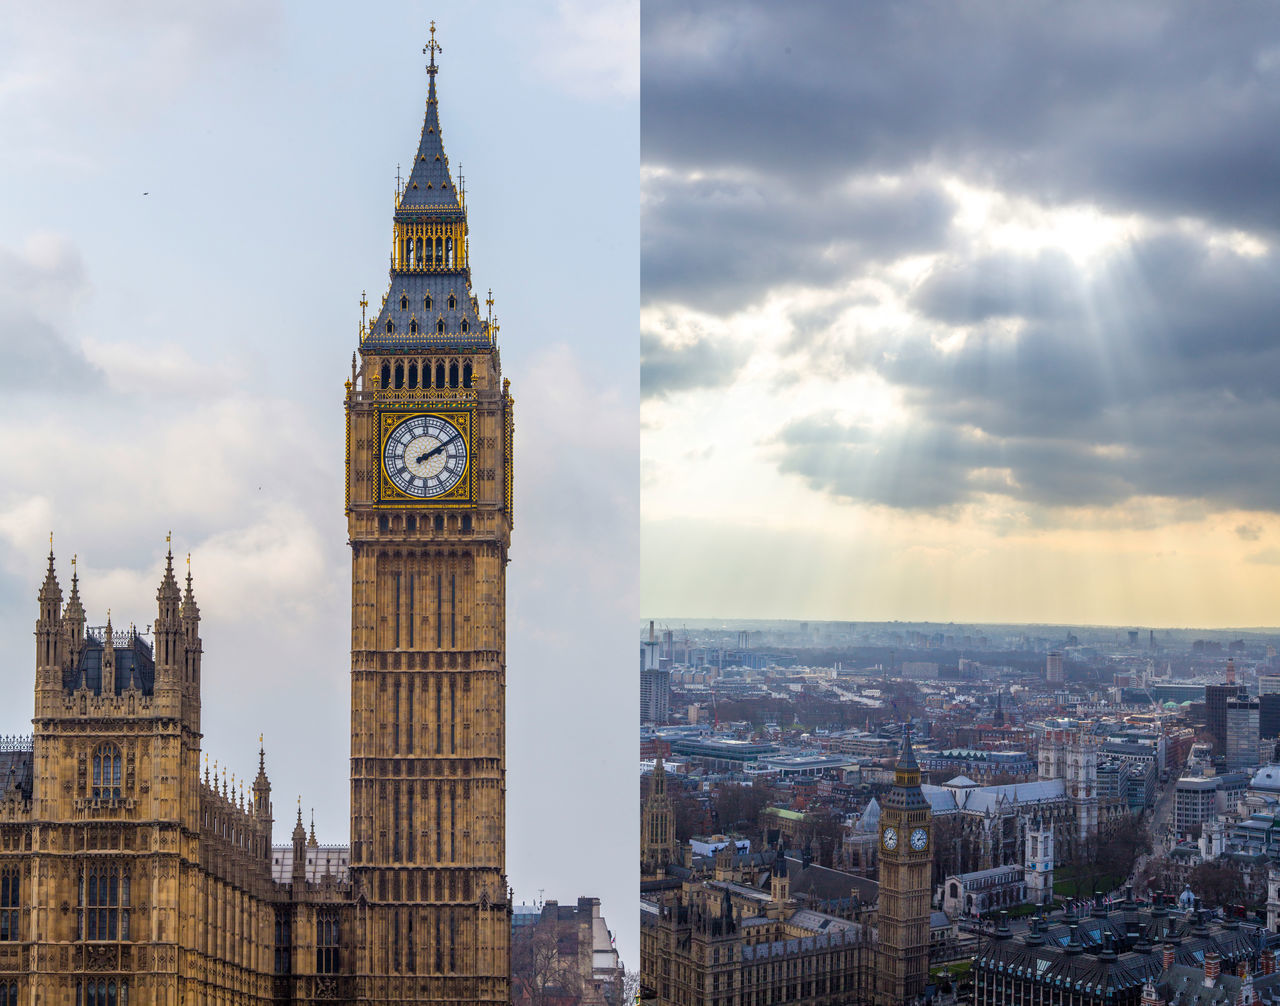 Big Ben . Architecture Big Ben Building Exterior City City Life Cityscape Clock Clock Tower Cloud - Sky Earth London No People Outdoors Tower Travel Travel Destination Travel Destinations Travel Photography Traveling